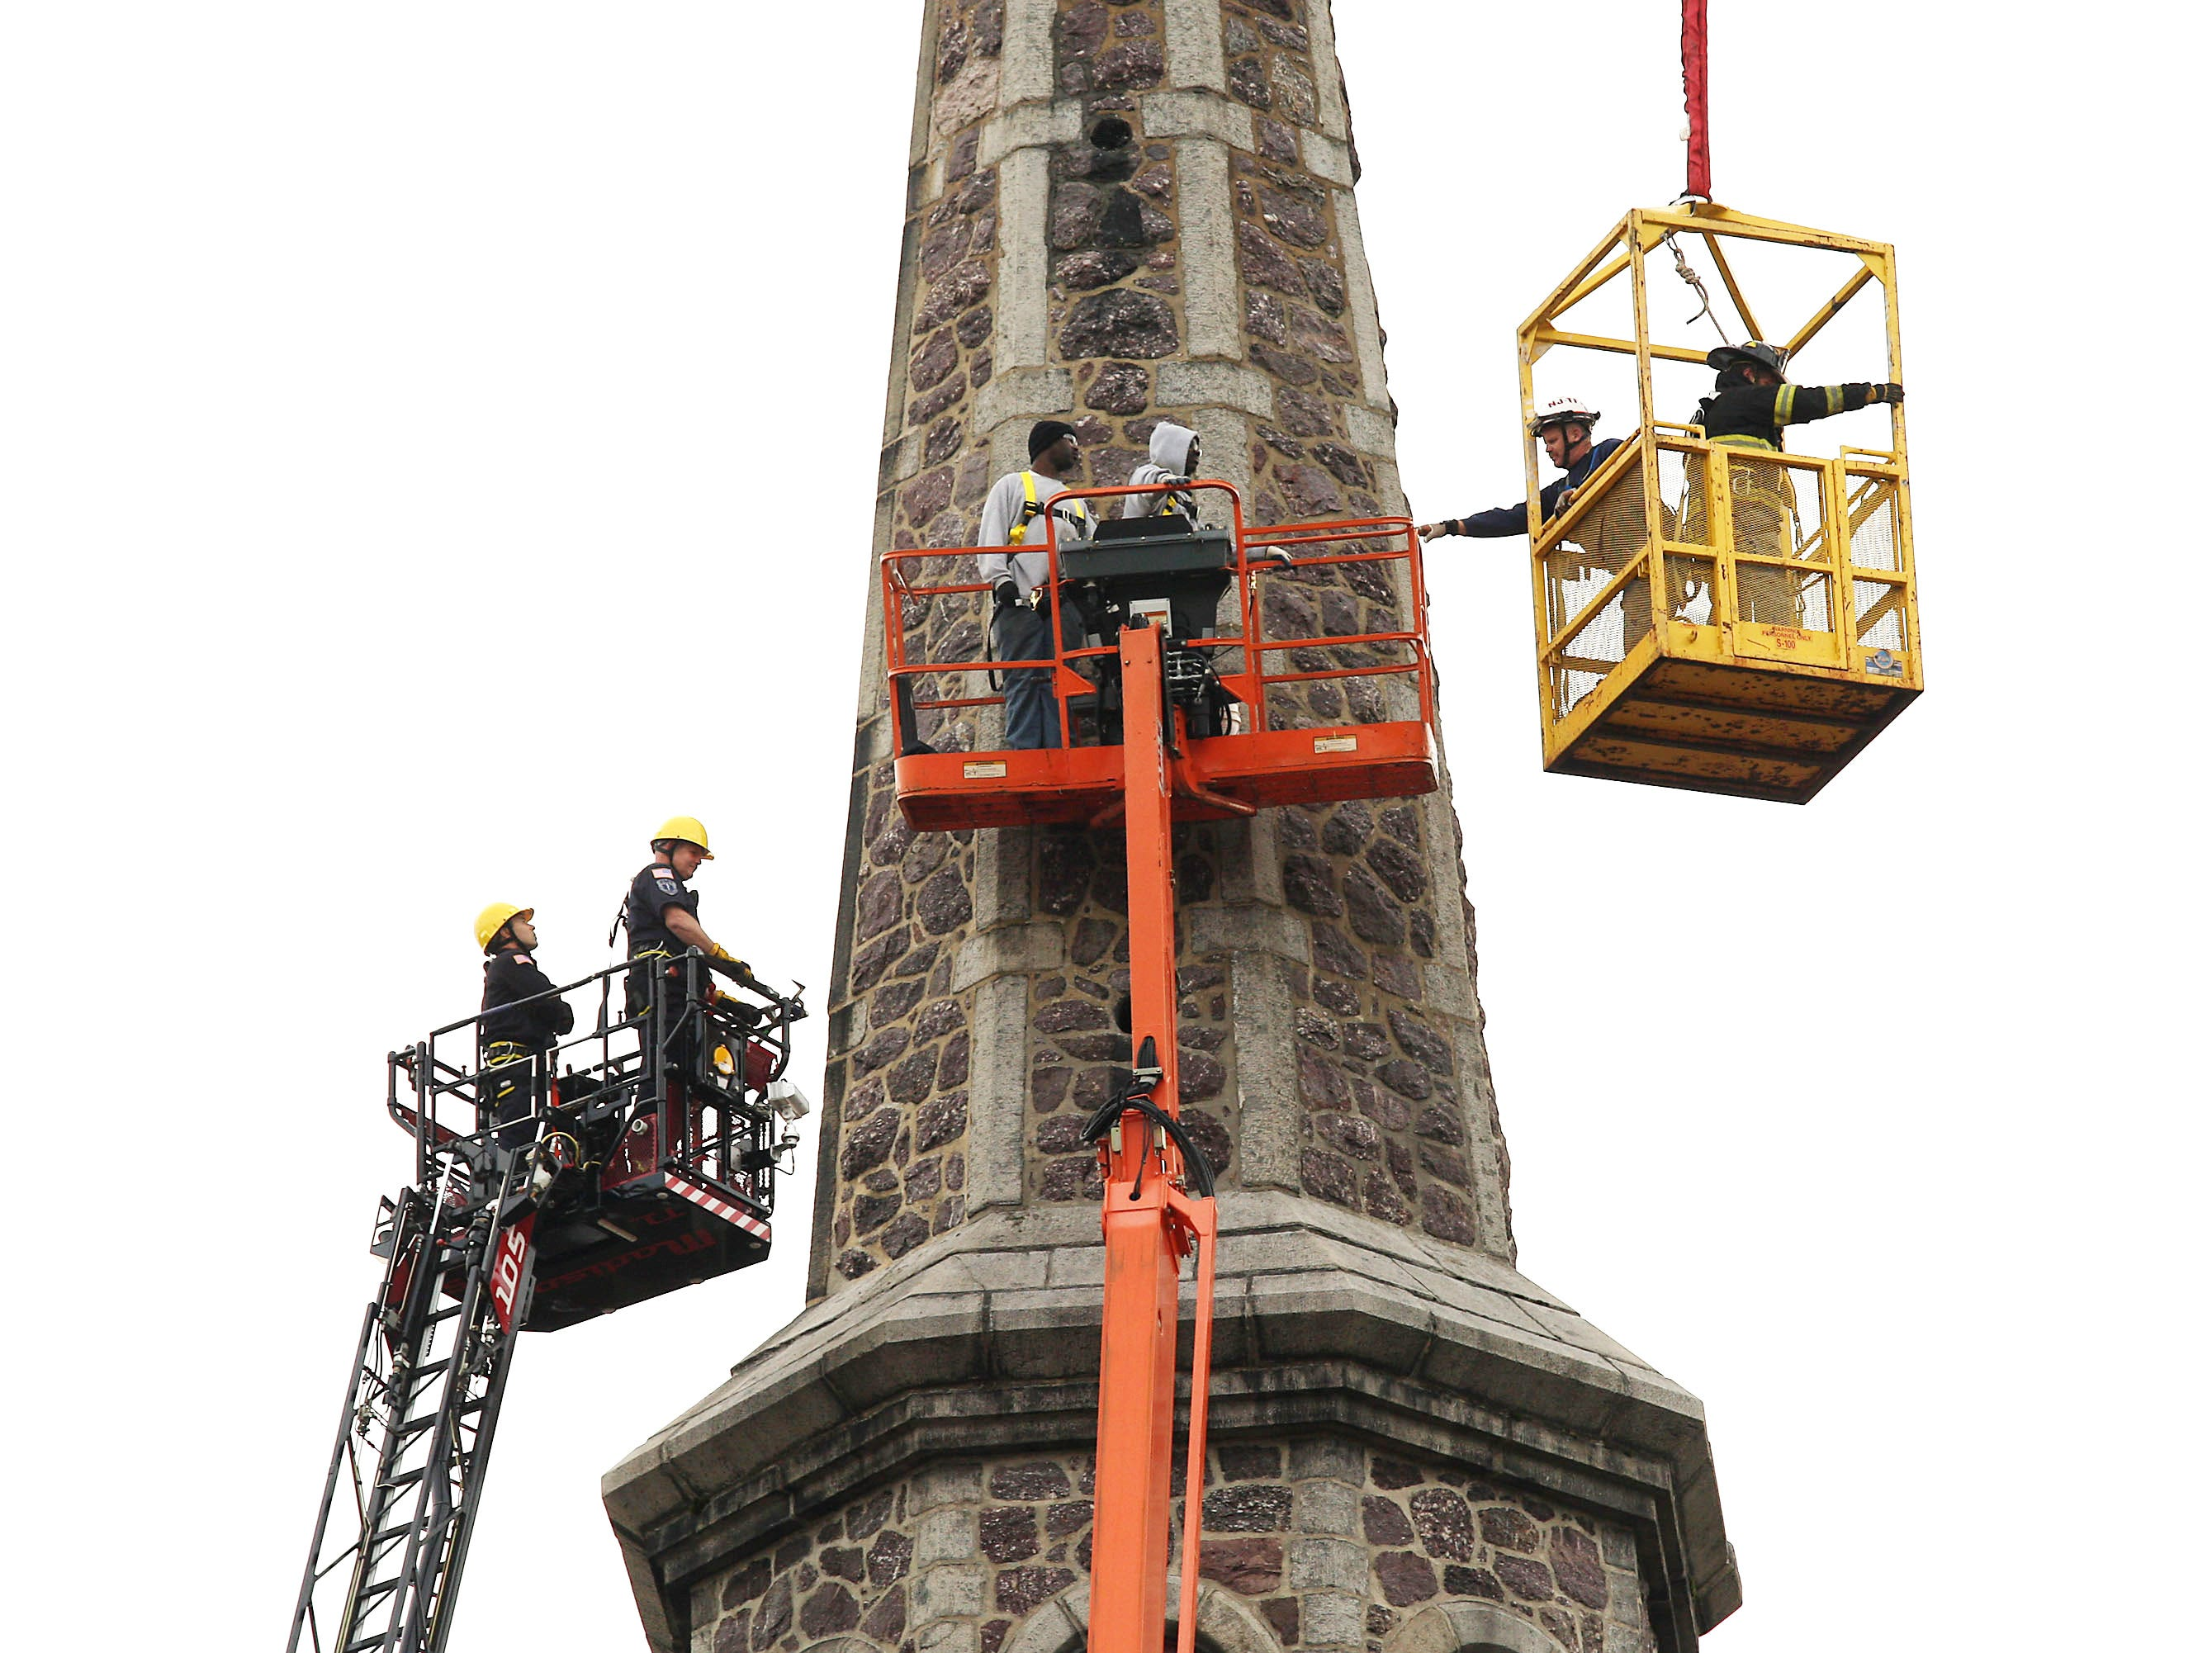 Morristown, 11/3/11-- Following a three-hour effort, two workers trapped on a lift 120 feet in the air against the steeple of the Morristown United Methodist Church were rescued. The men were performing restoration work on the church when the lift they were on became wedged against the steeple.